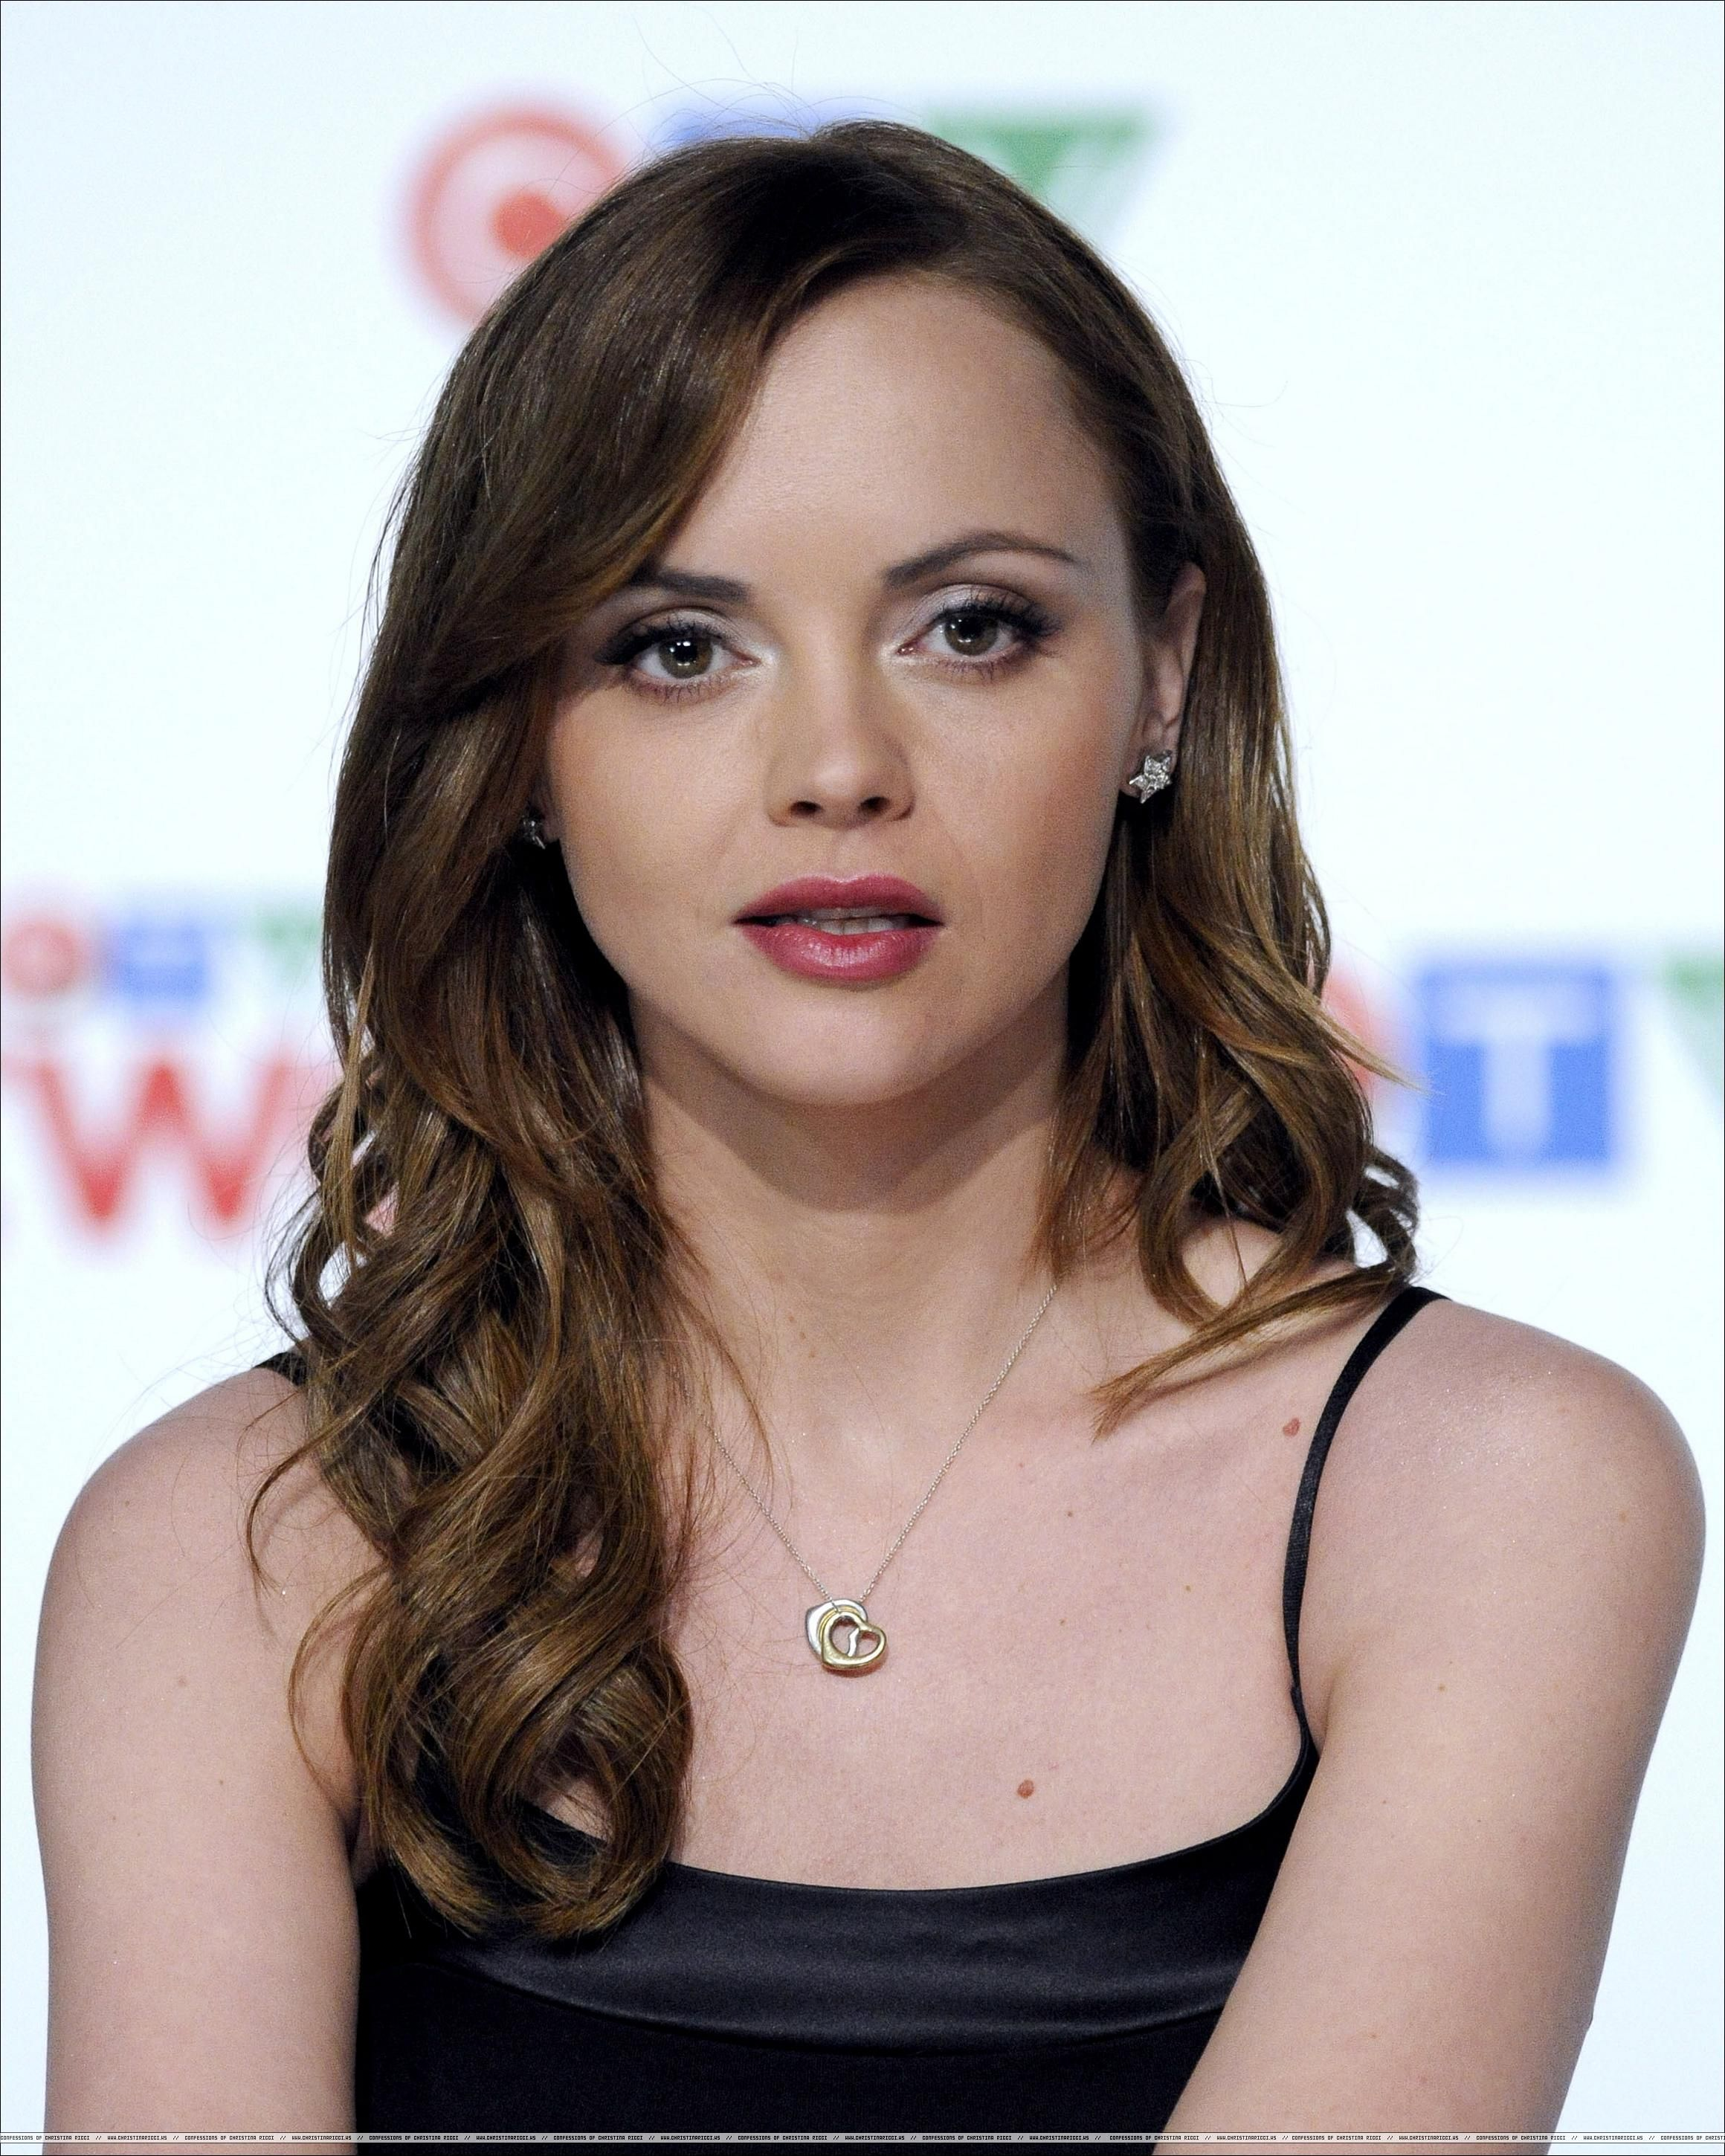 UNITE video with actress Christina Ricci showing how her stylist ...